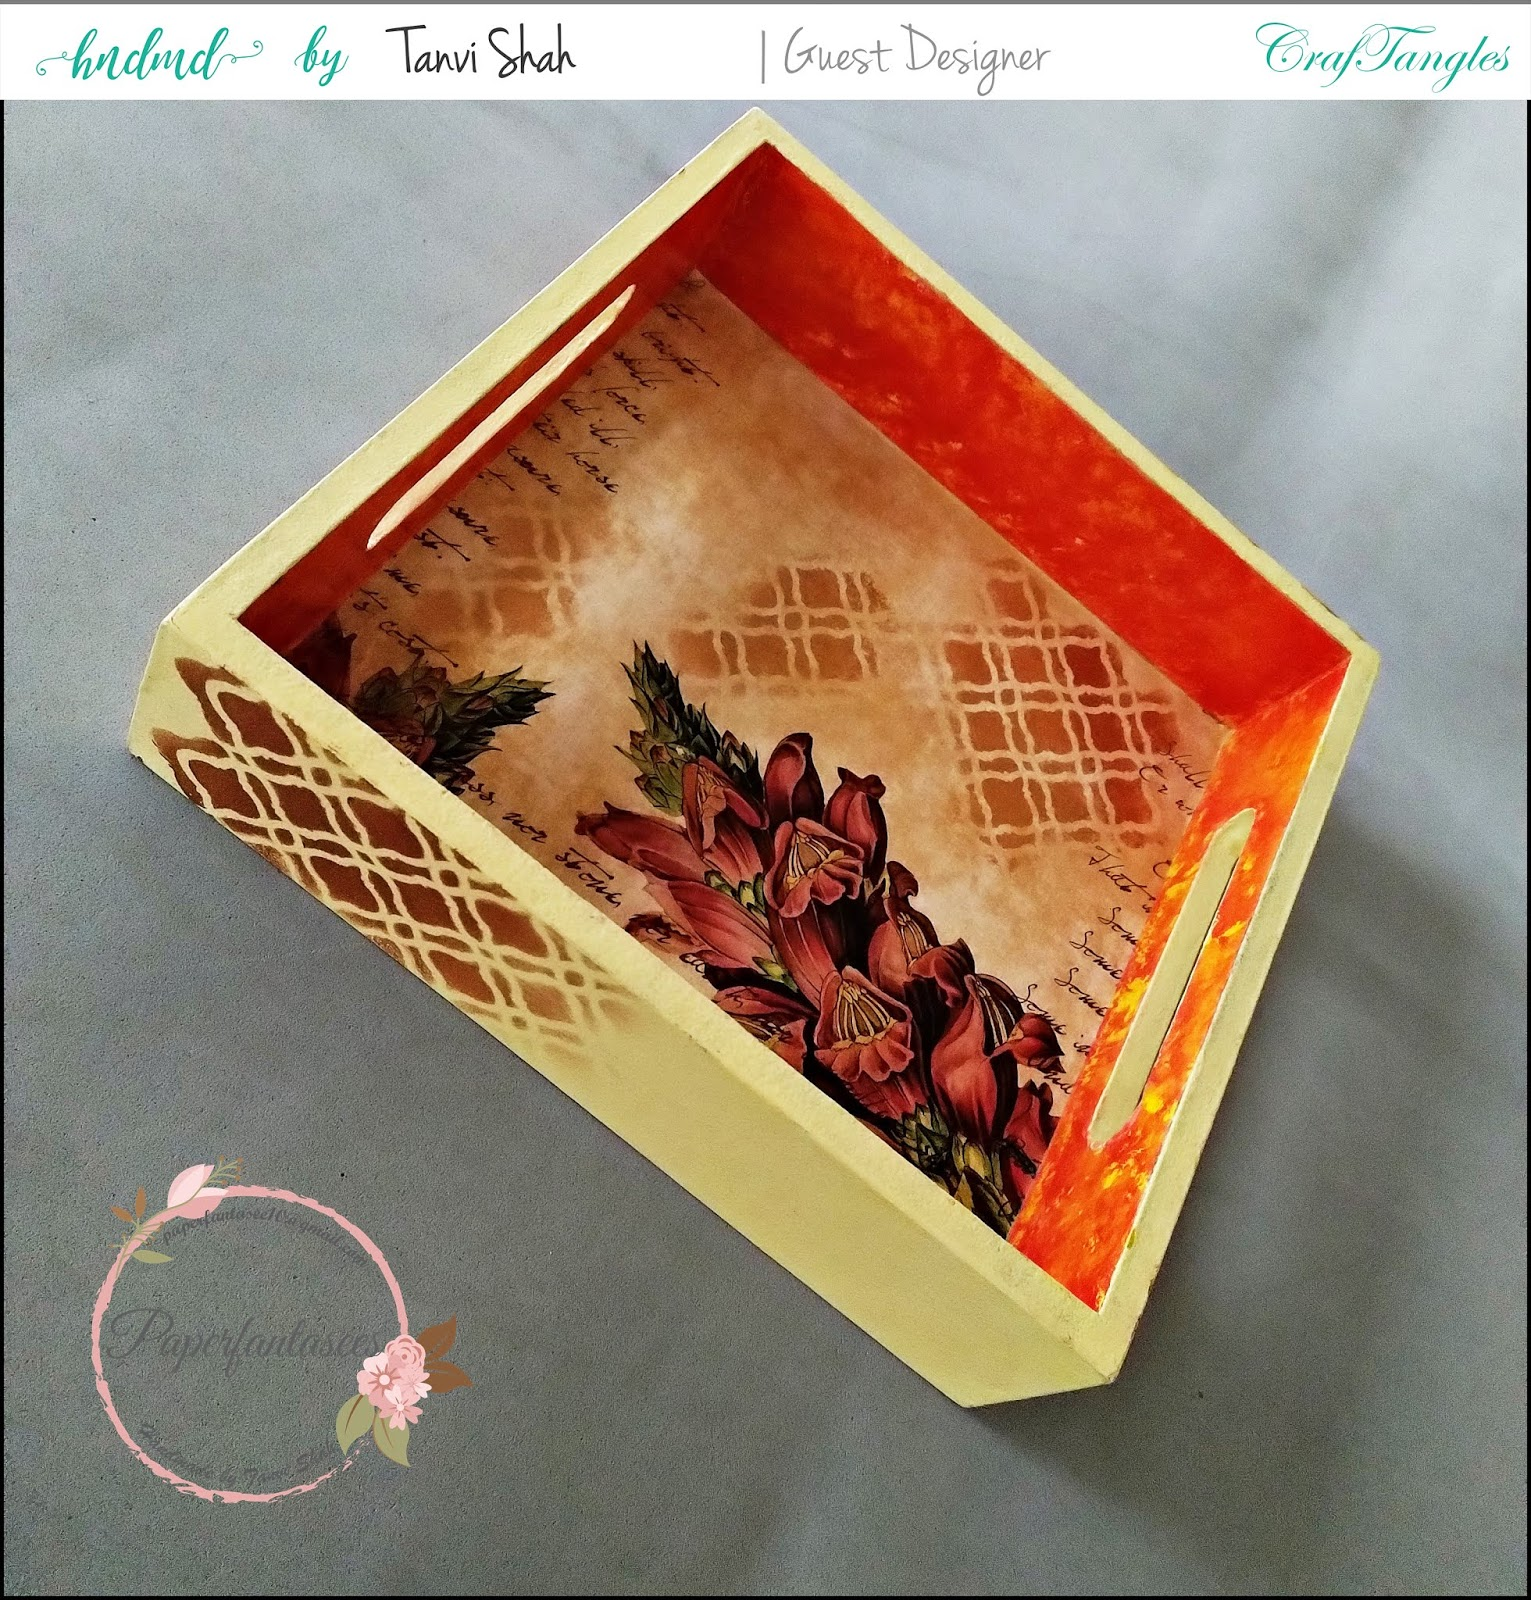 Guest post by Tanvee using CrafTangles decoupage paper, Chalky Paint and Stencils 2